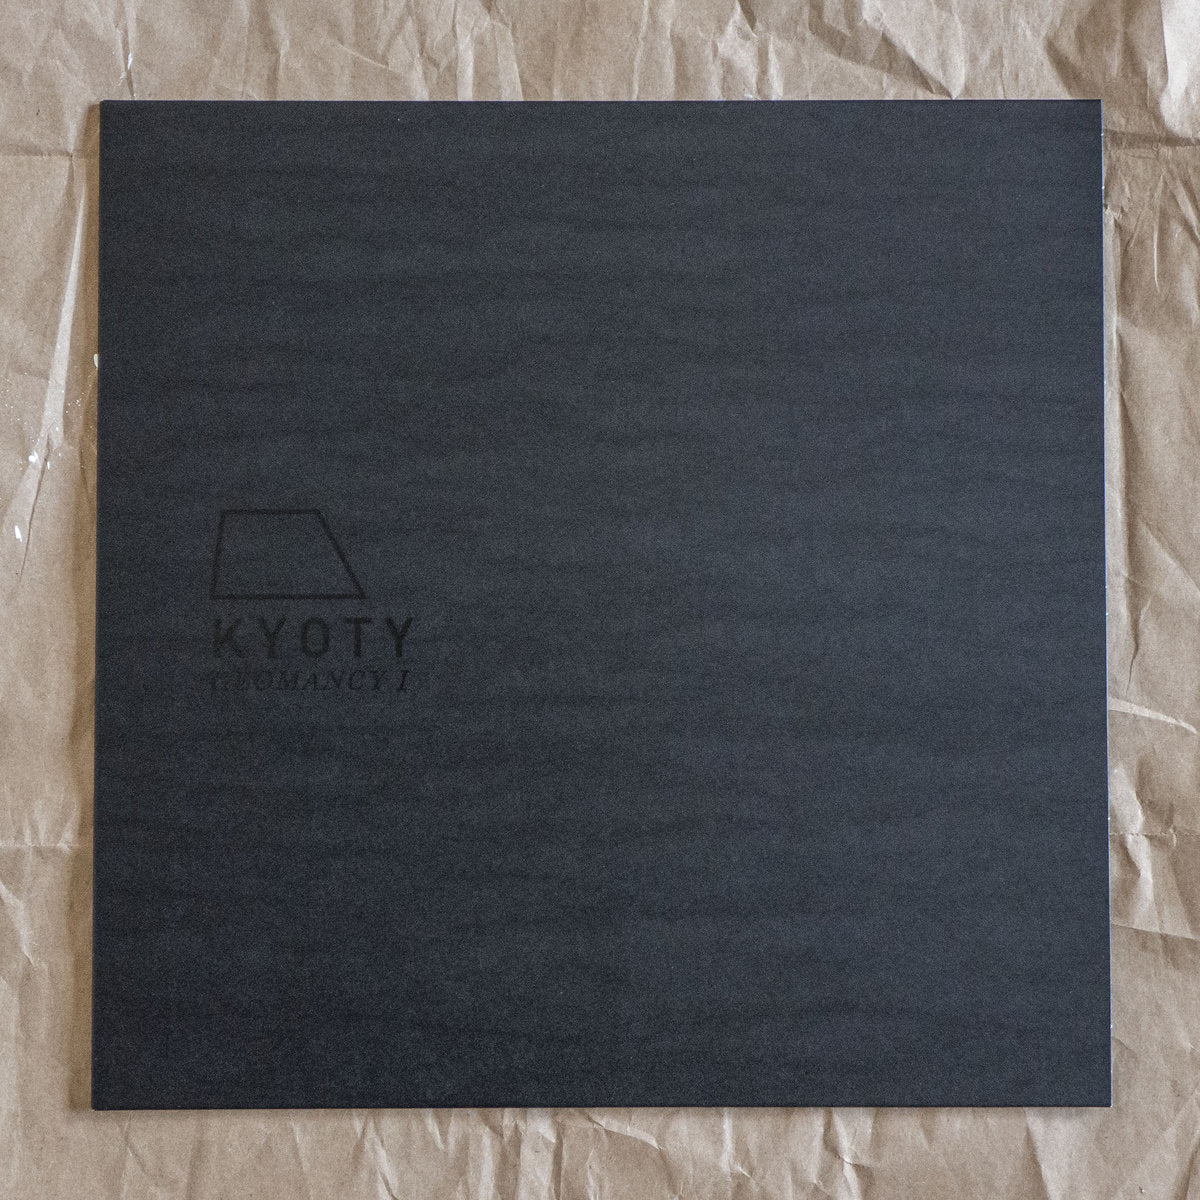 KYOTY - Geomancy I LP